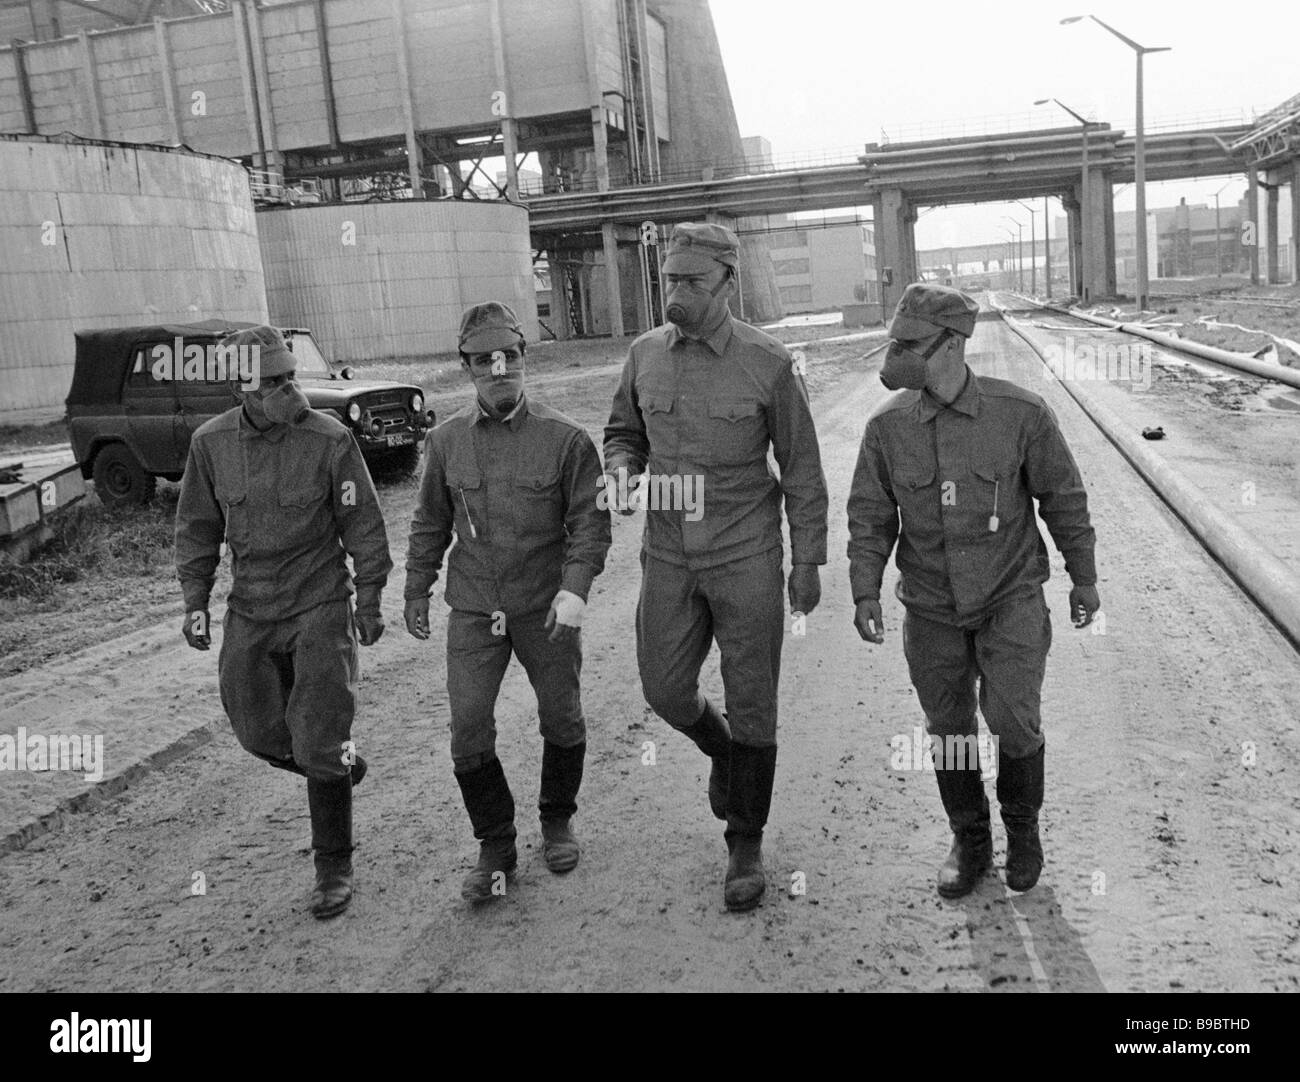 Decontamination units on the way to the Chernobyl NPP disaster scene - Stock Image